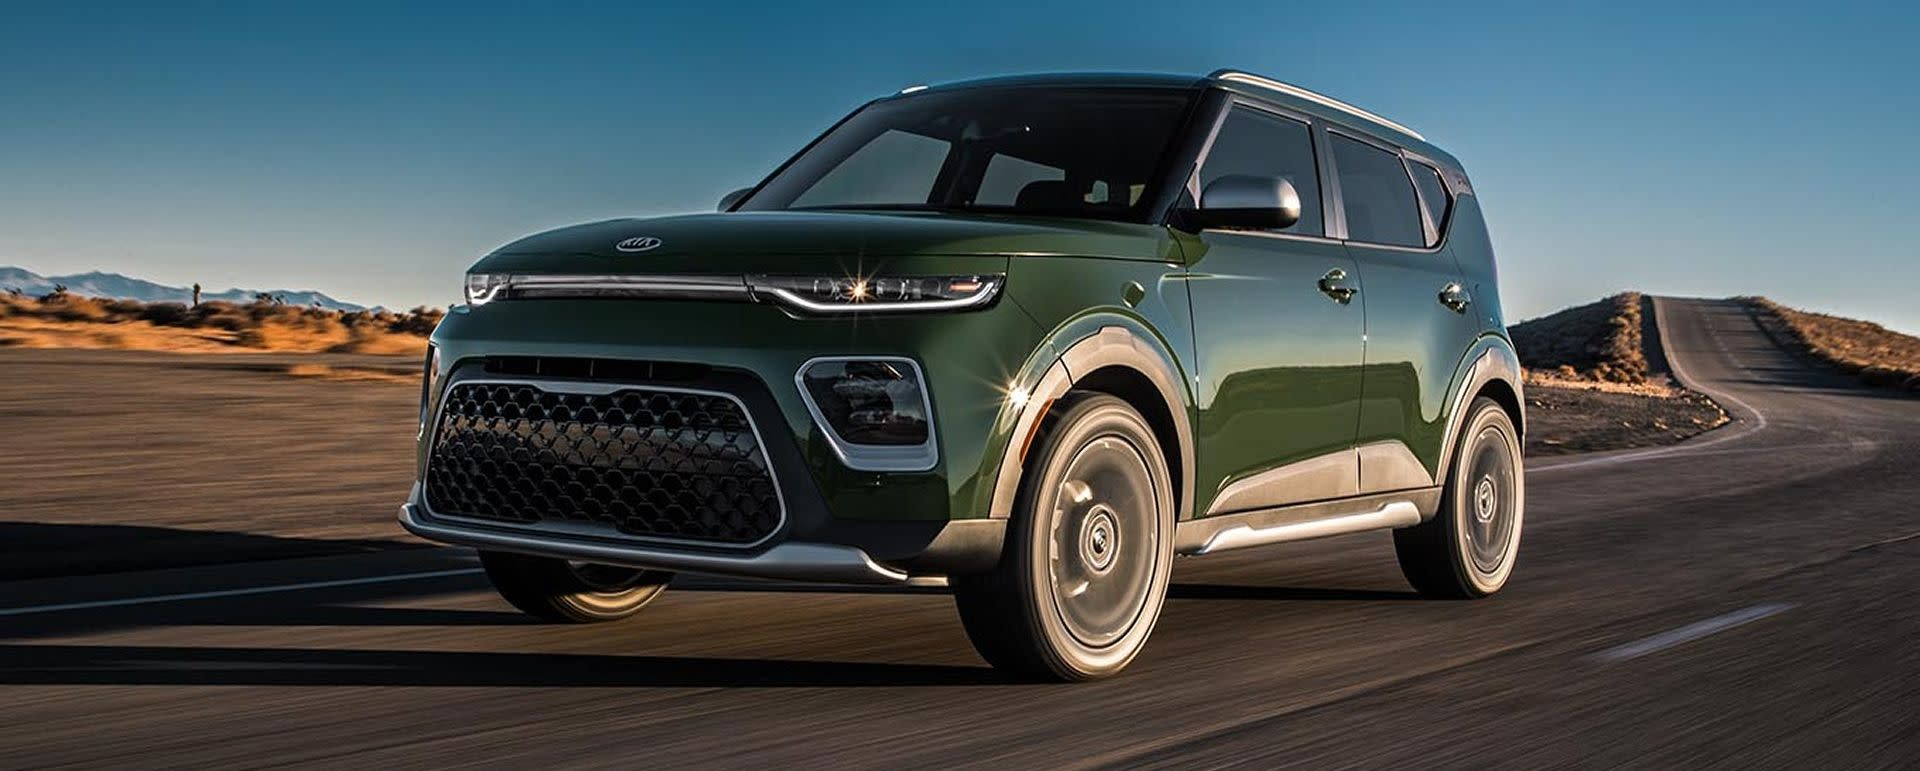 2020 Kia Soul Lease Options in Omaha, NE